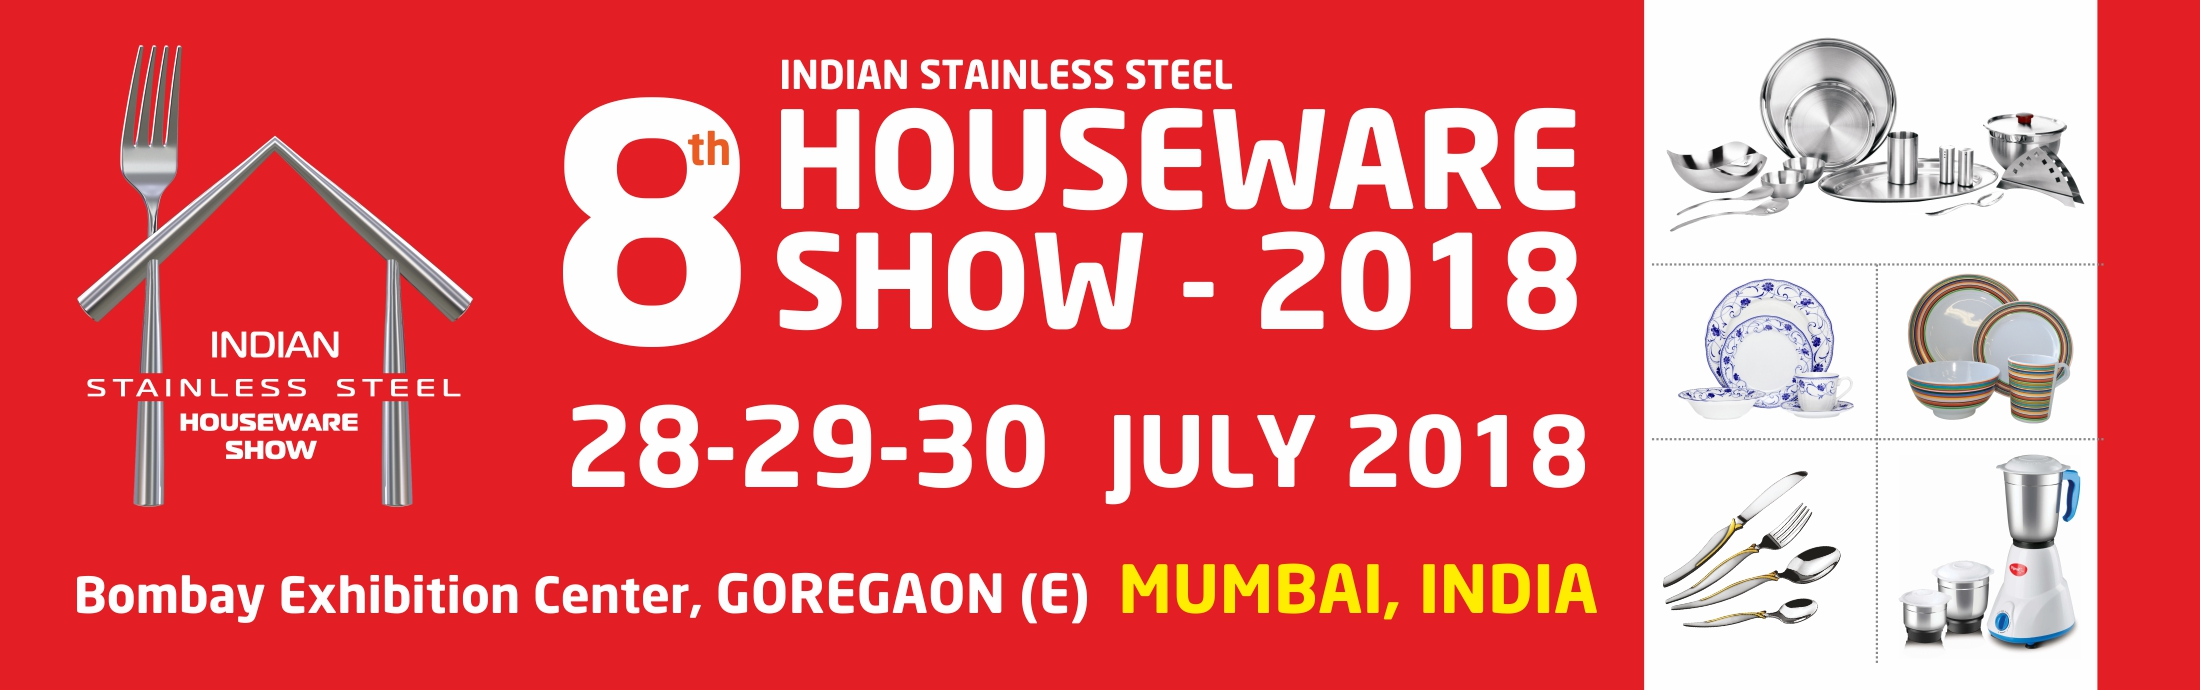 Indian stainless steel Houseware Show